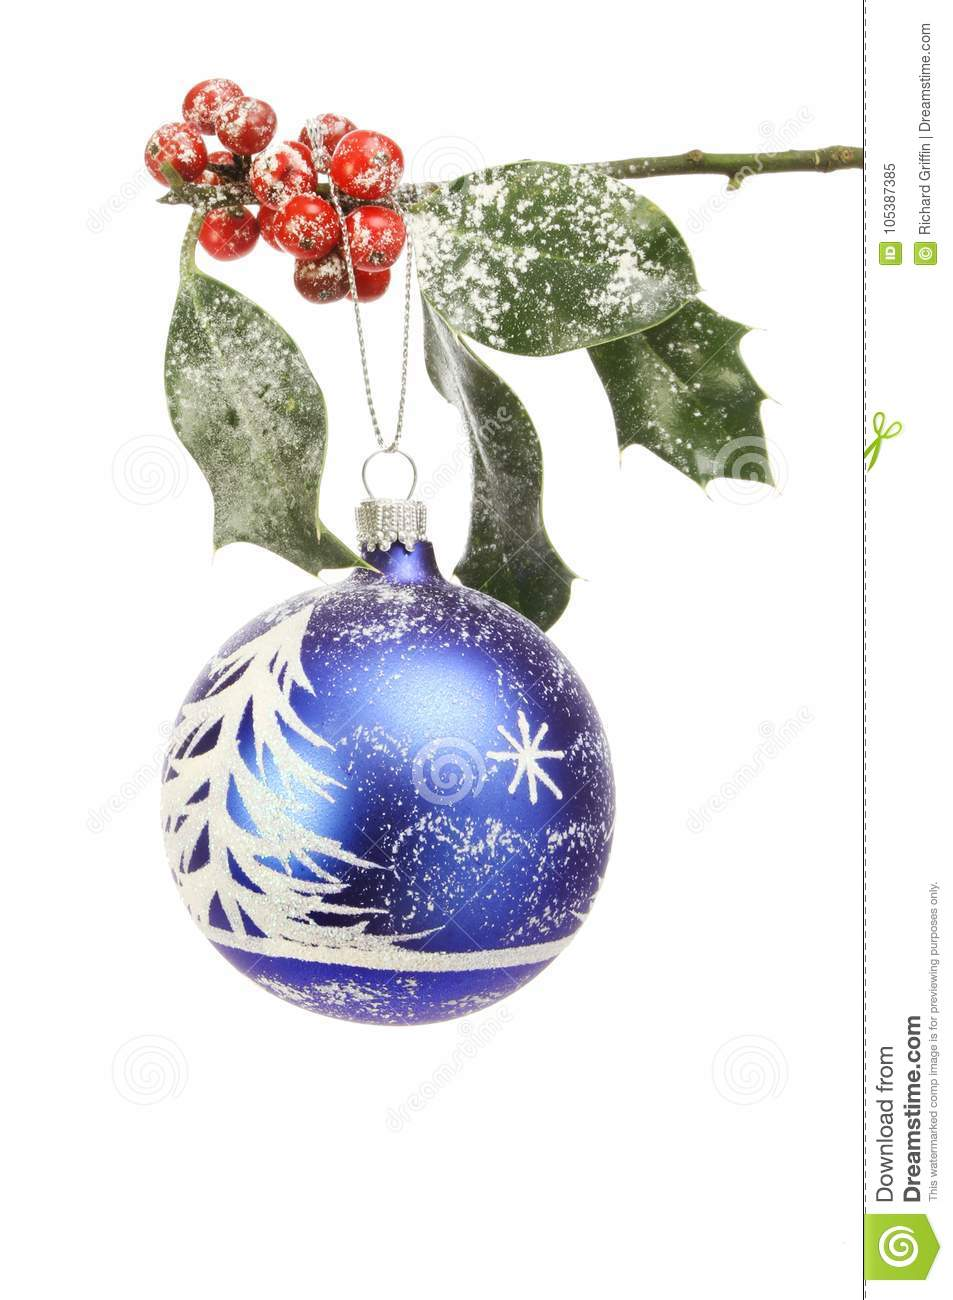 Snow scene bauble in holly